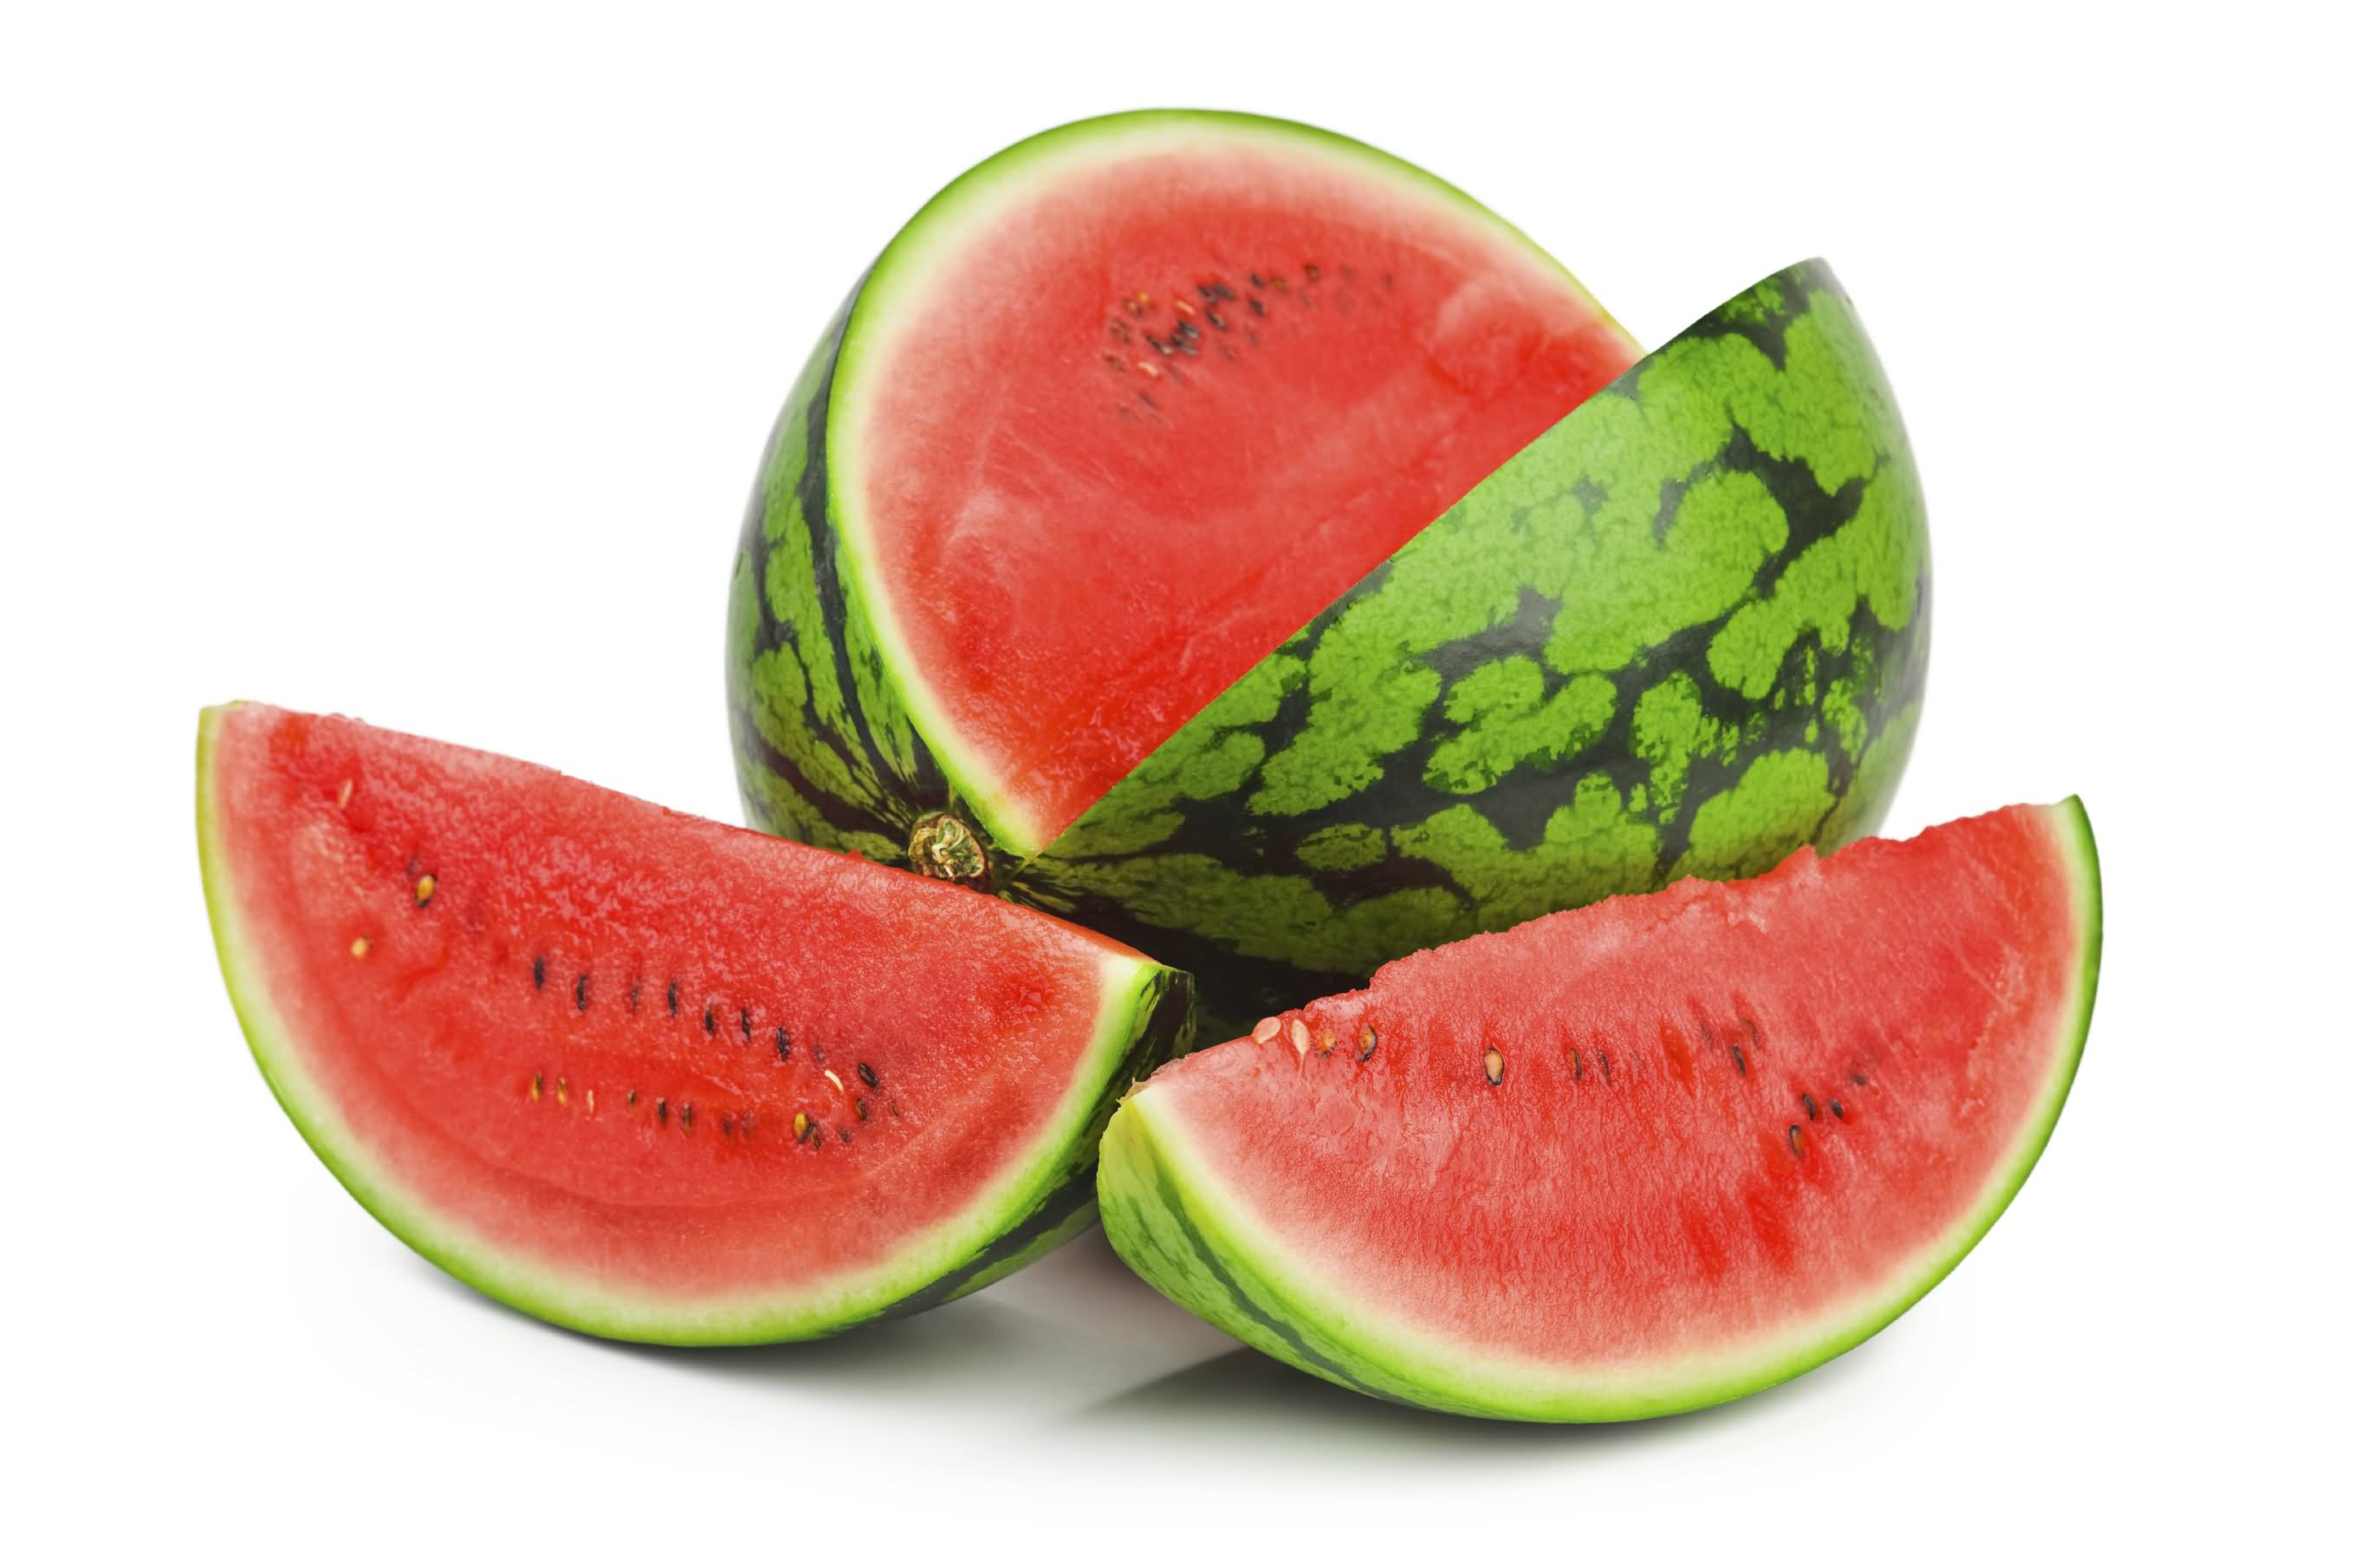 Watermelon @ Healthy Food For Baby